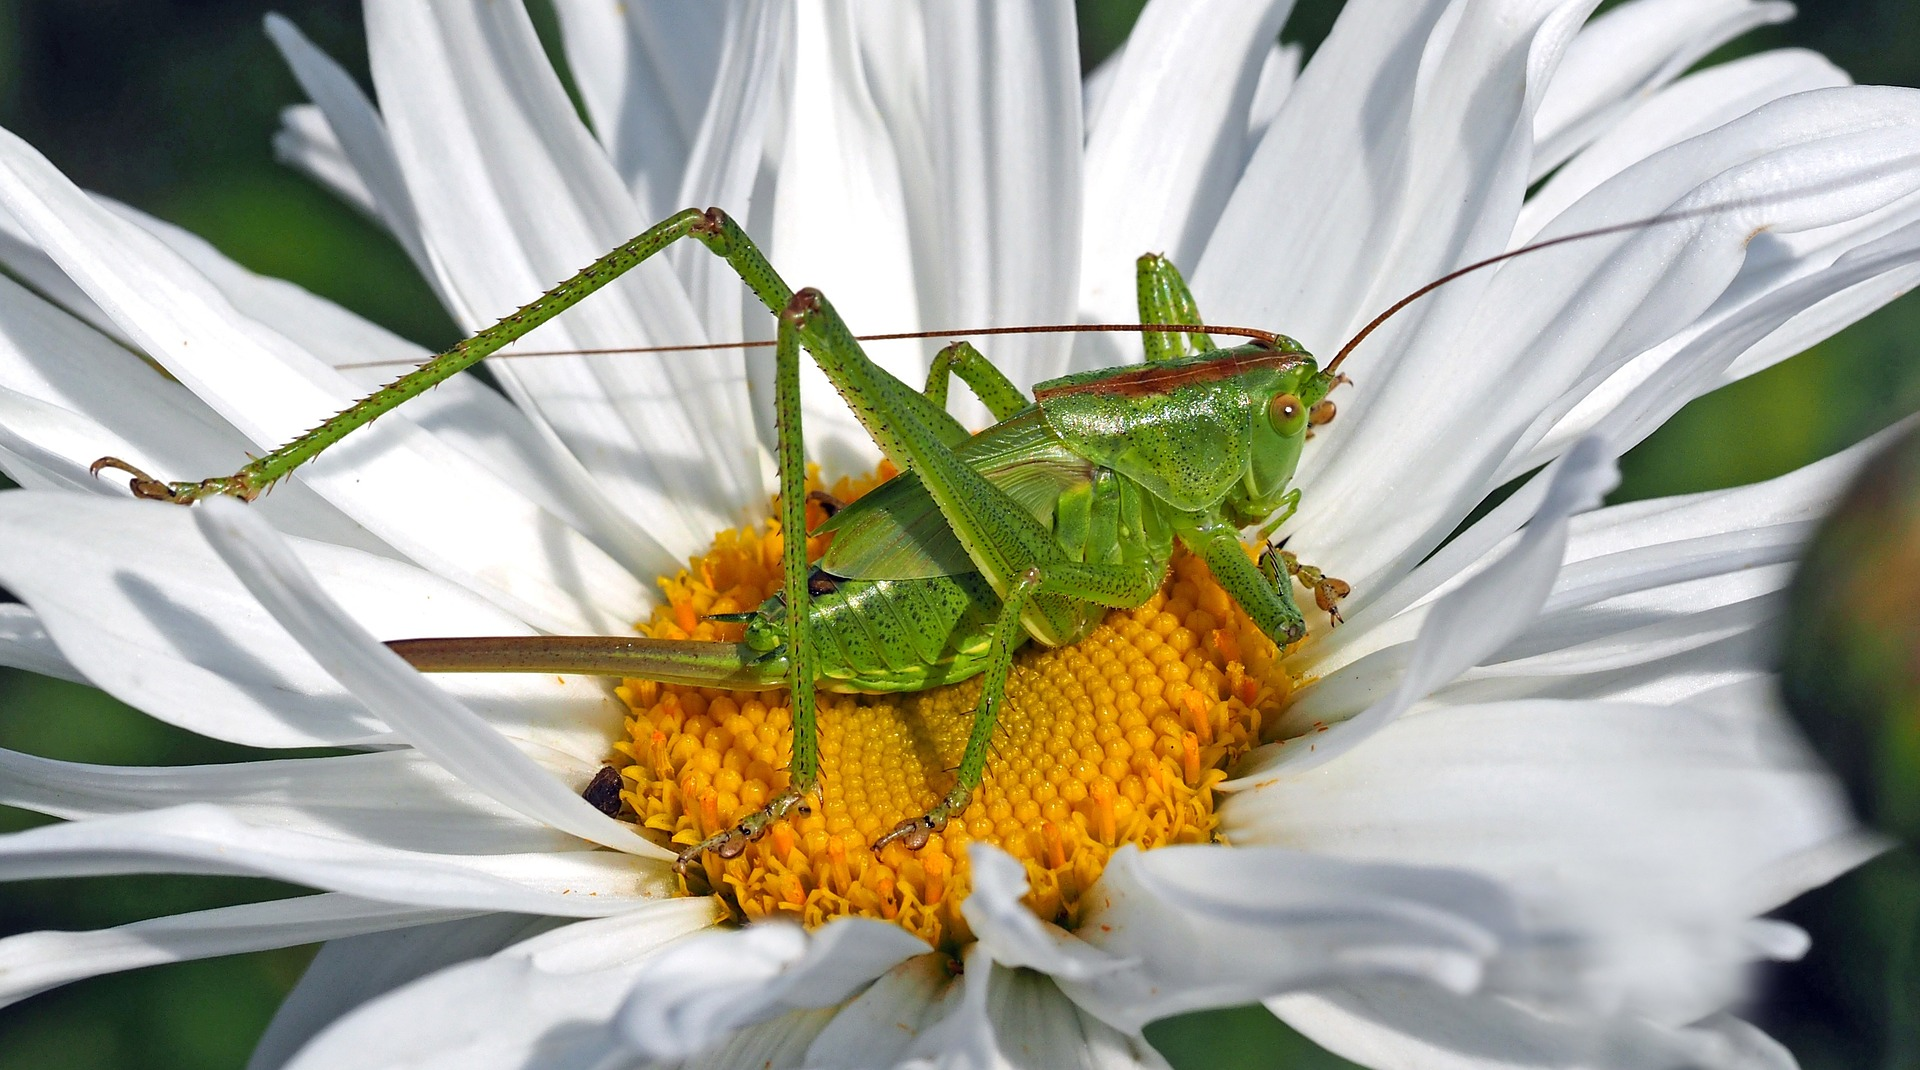 insect-1374695_1920.jpg